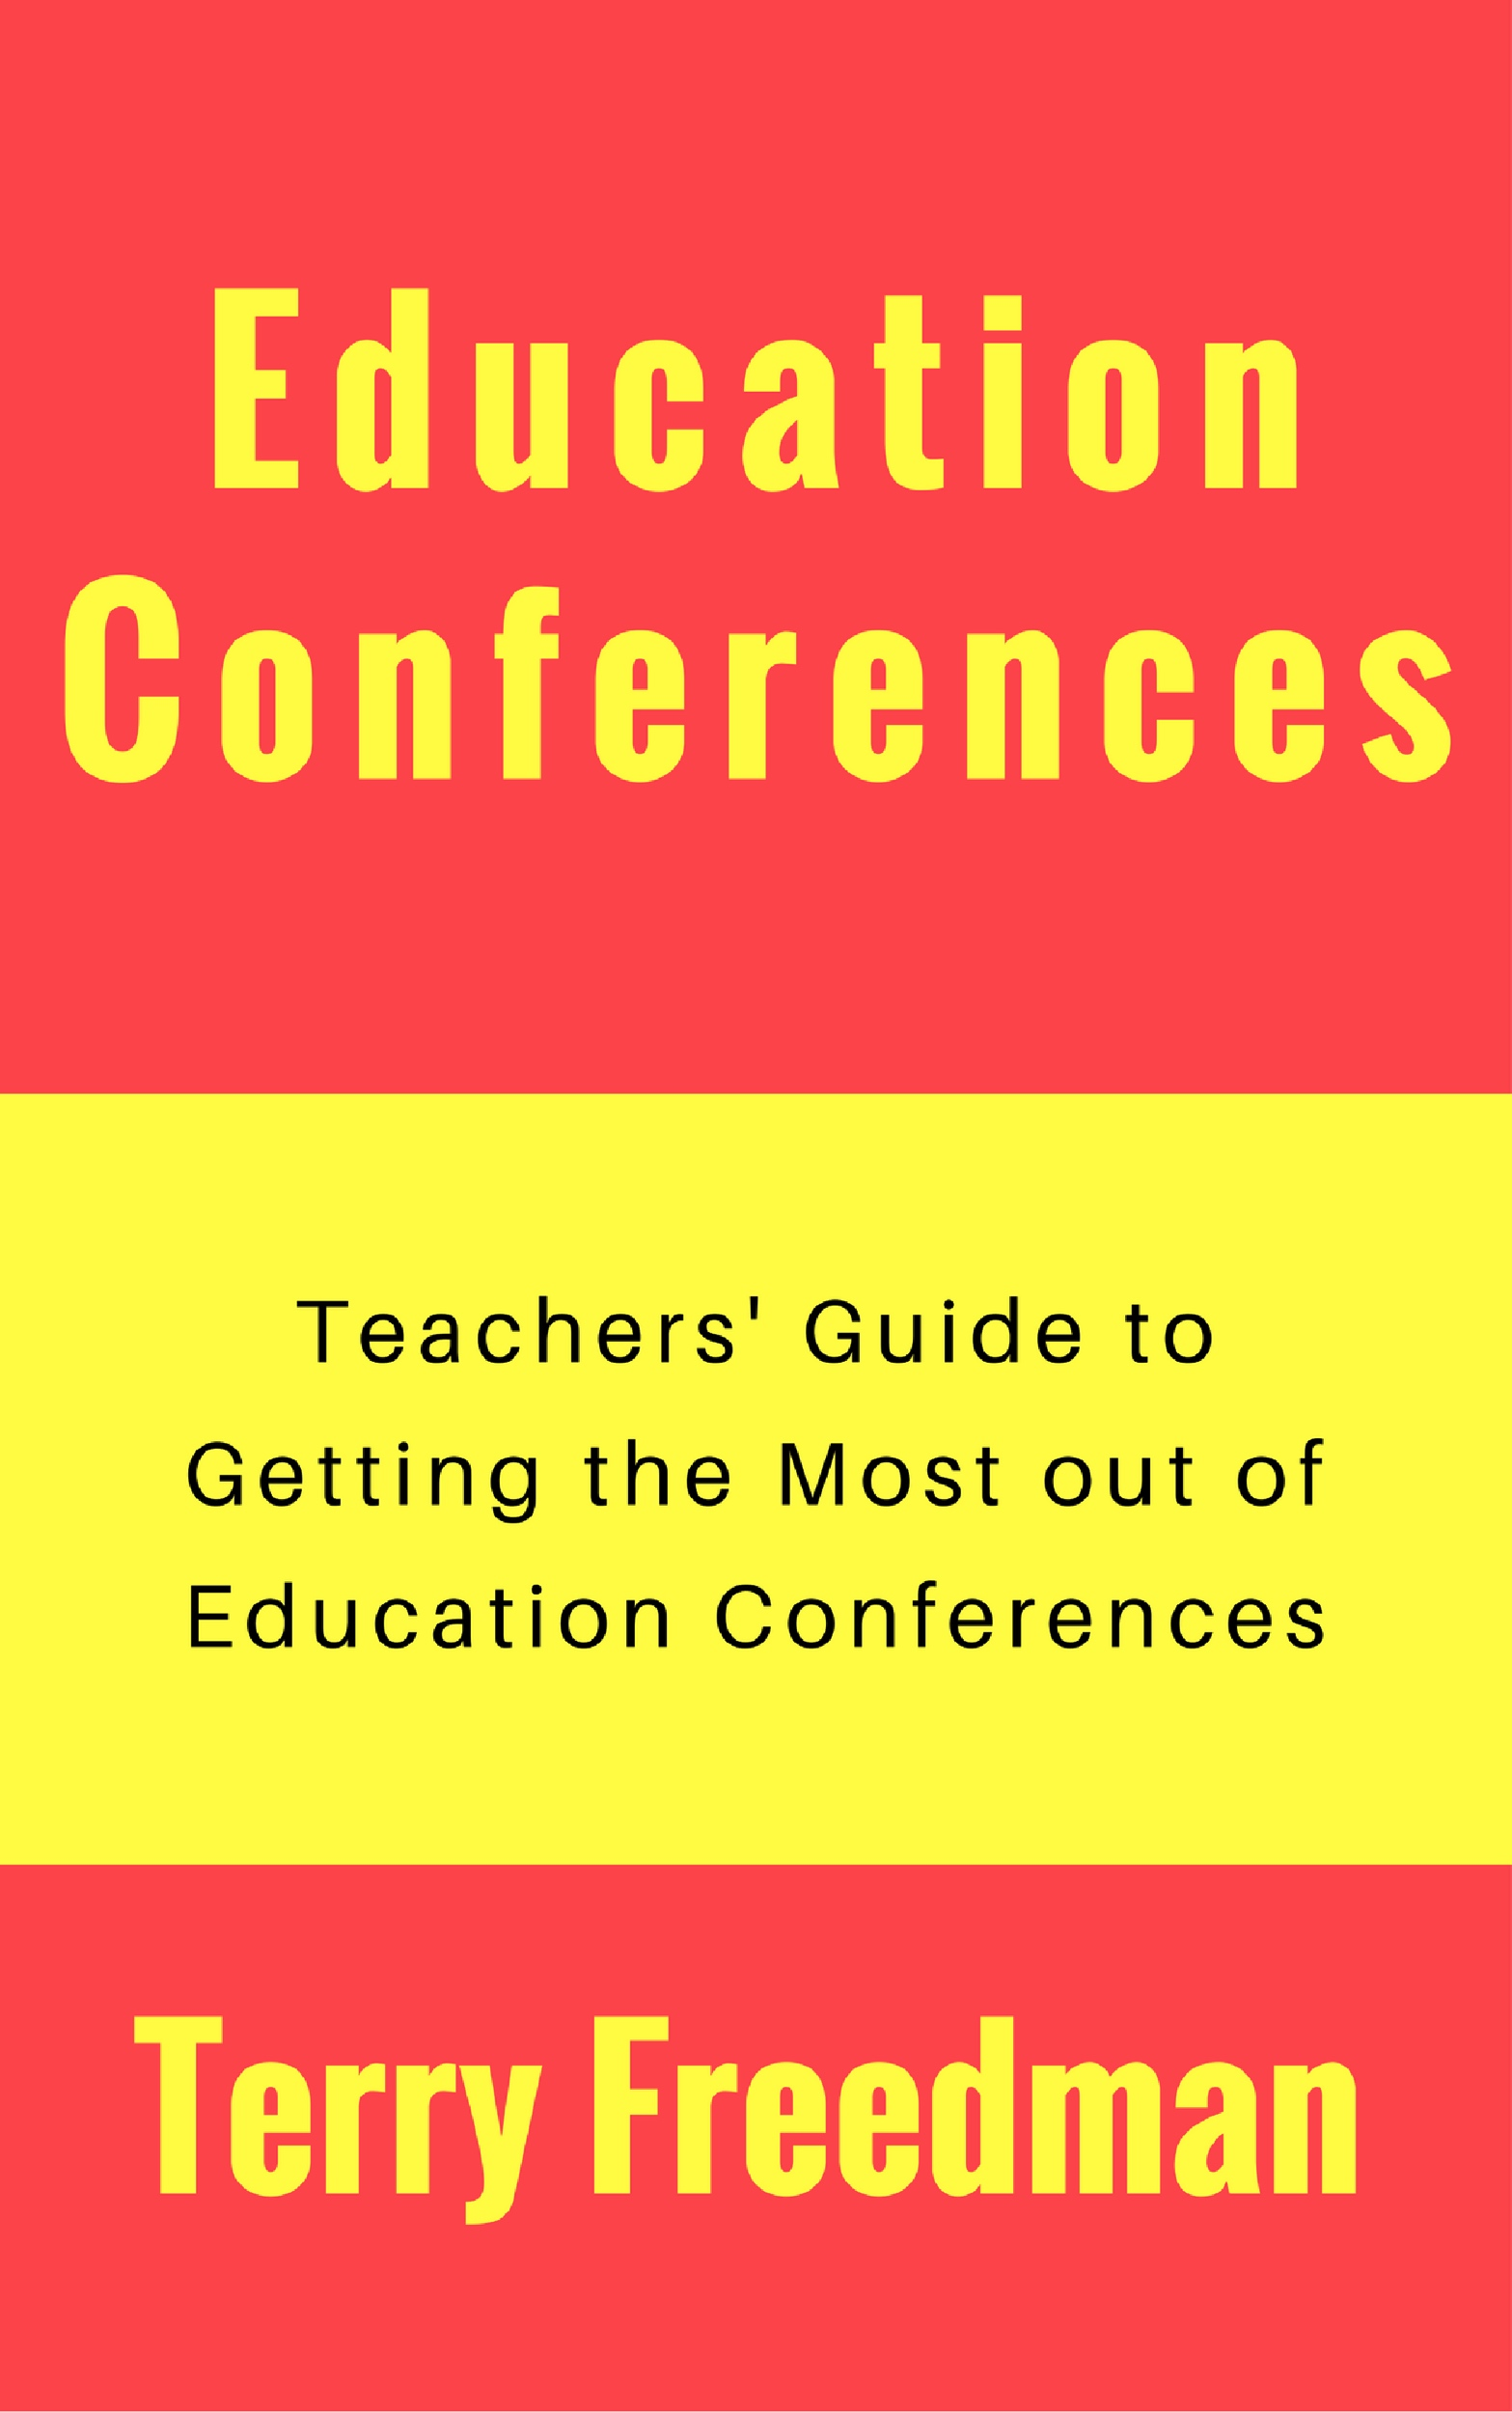 Education Conferences, by Terry Freedman